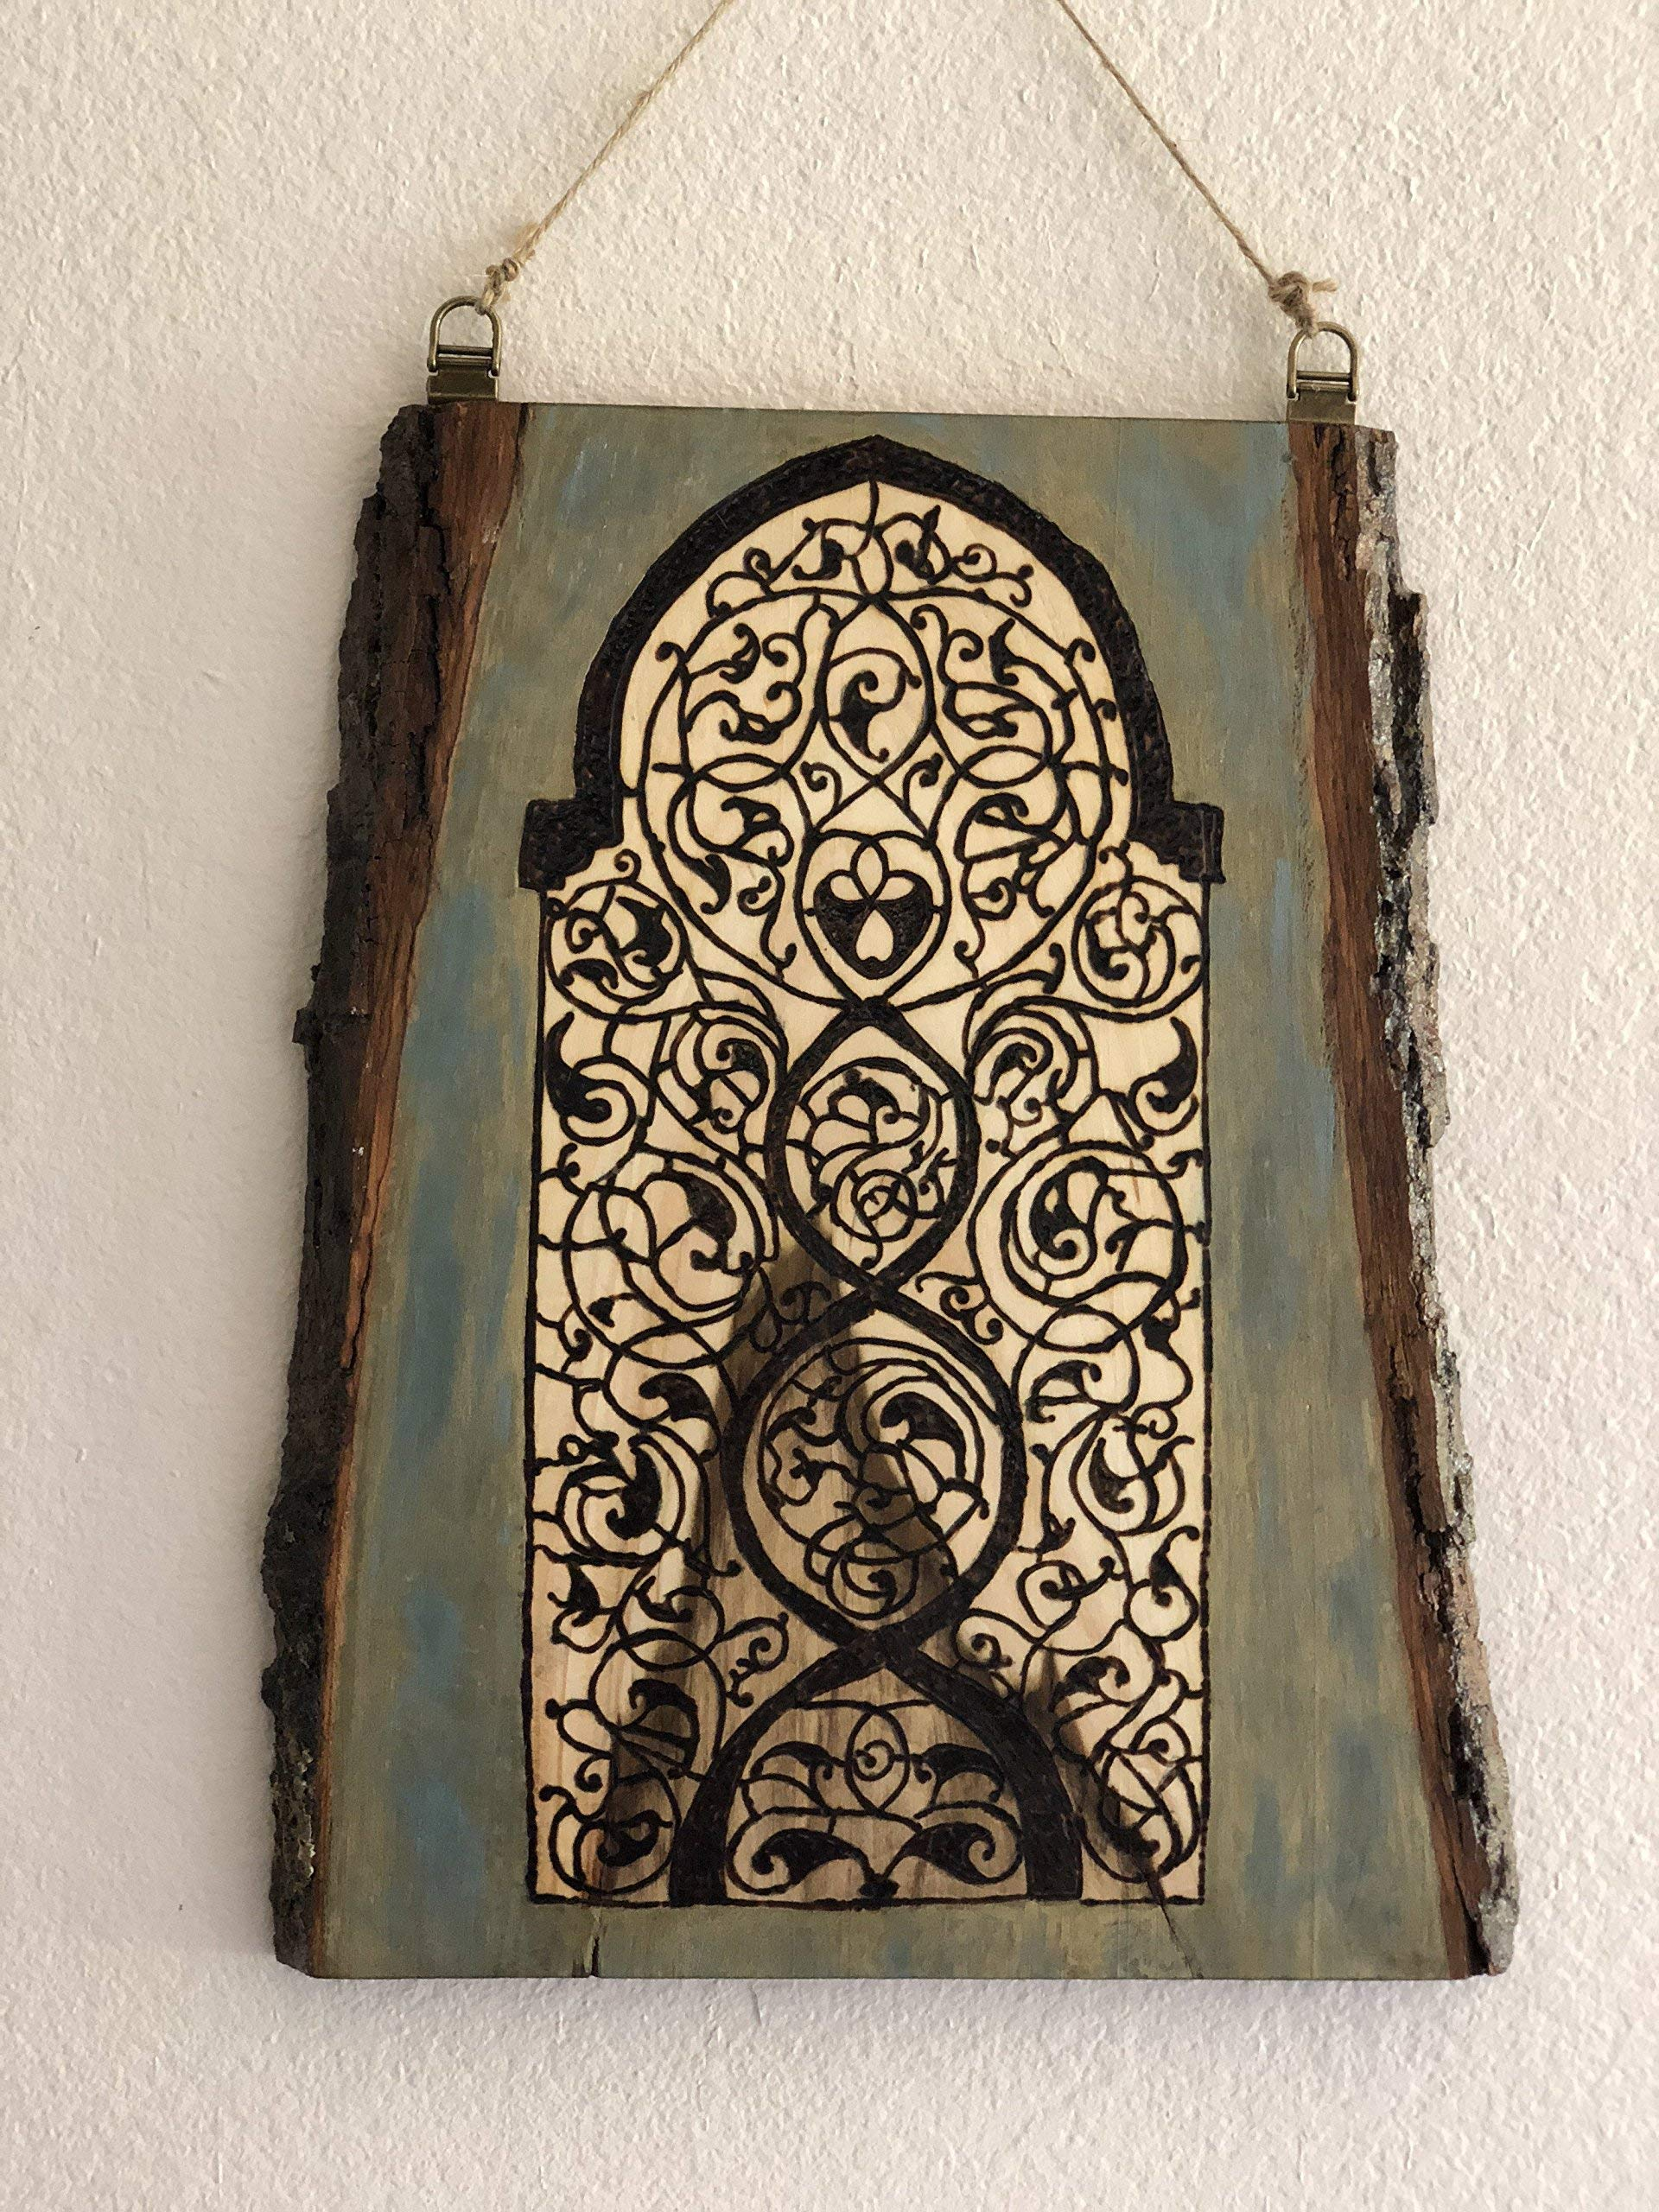 Handmade and Handcrafted Medieval Arabesque Wooden Wall Hanging With A Woodburned Indic, Jain, and Arabesque Fusion. Old World Antique Window Design